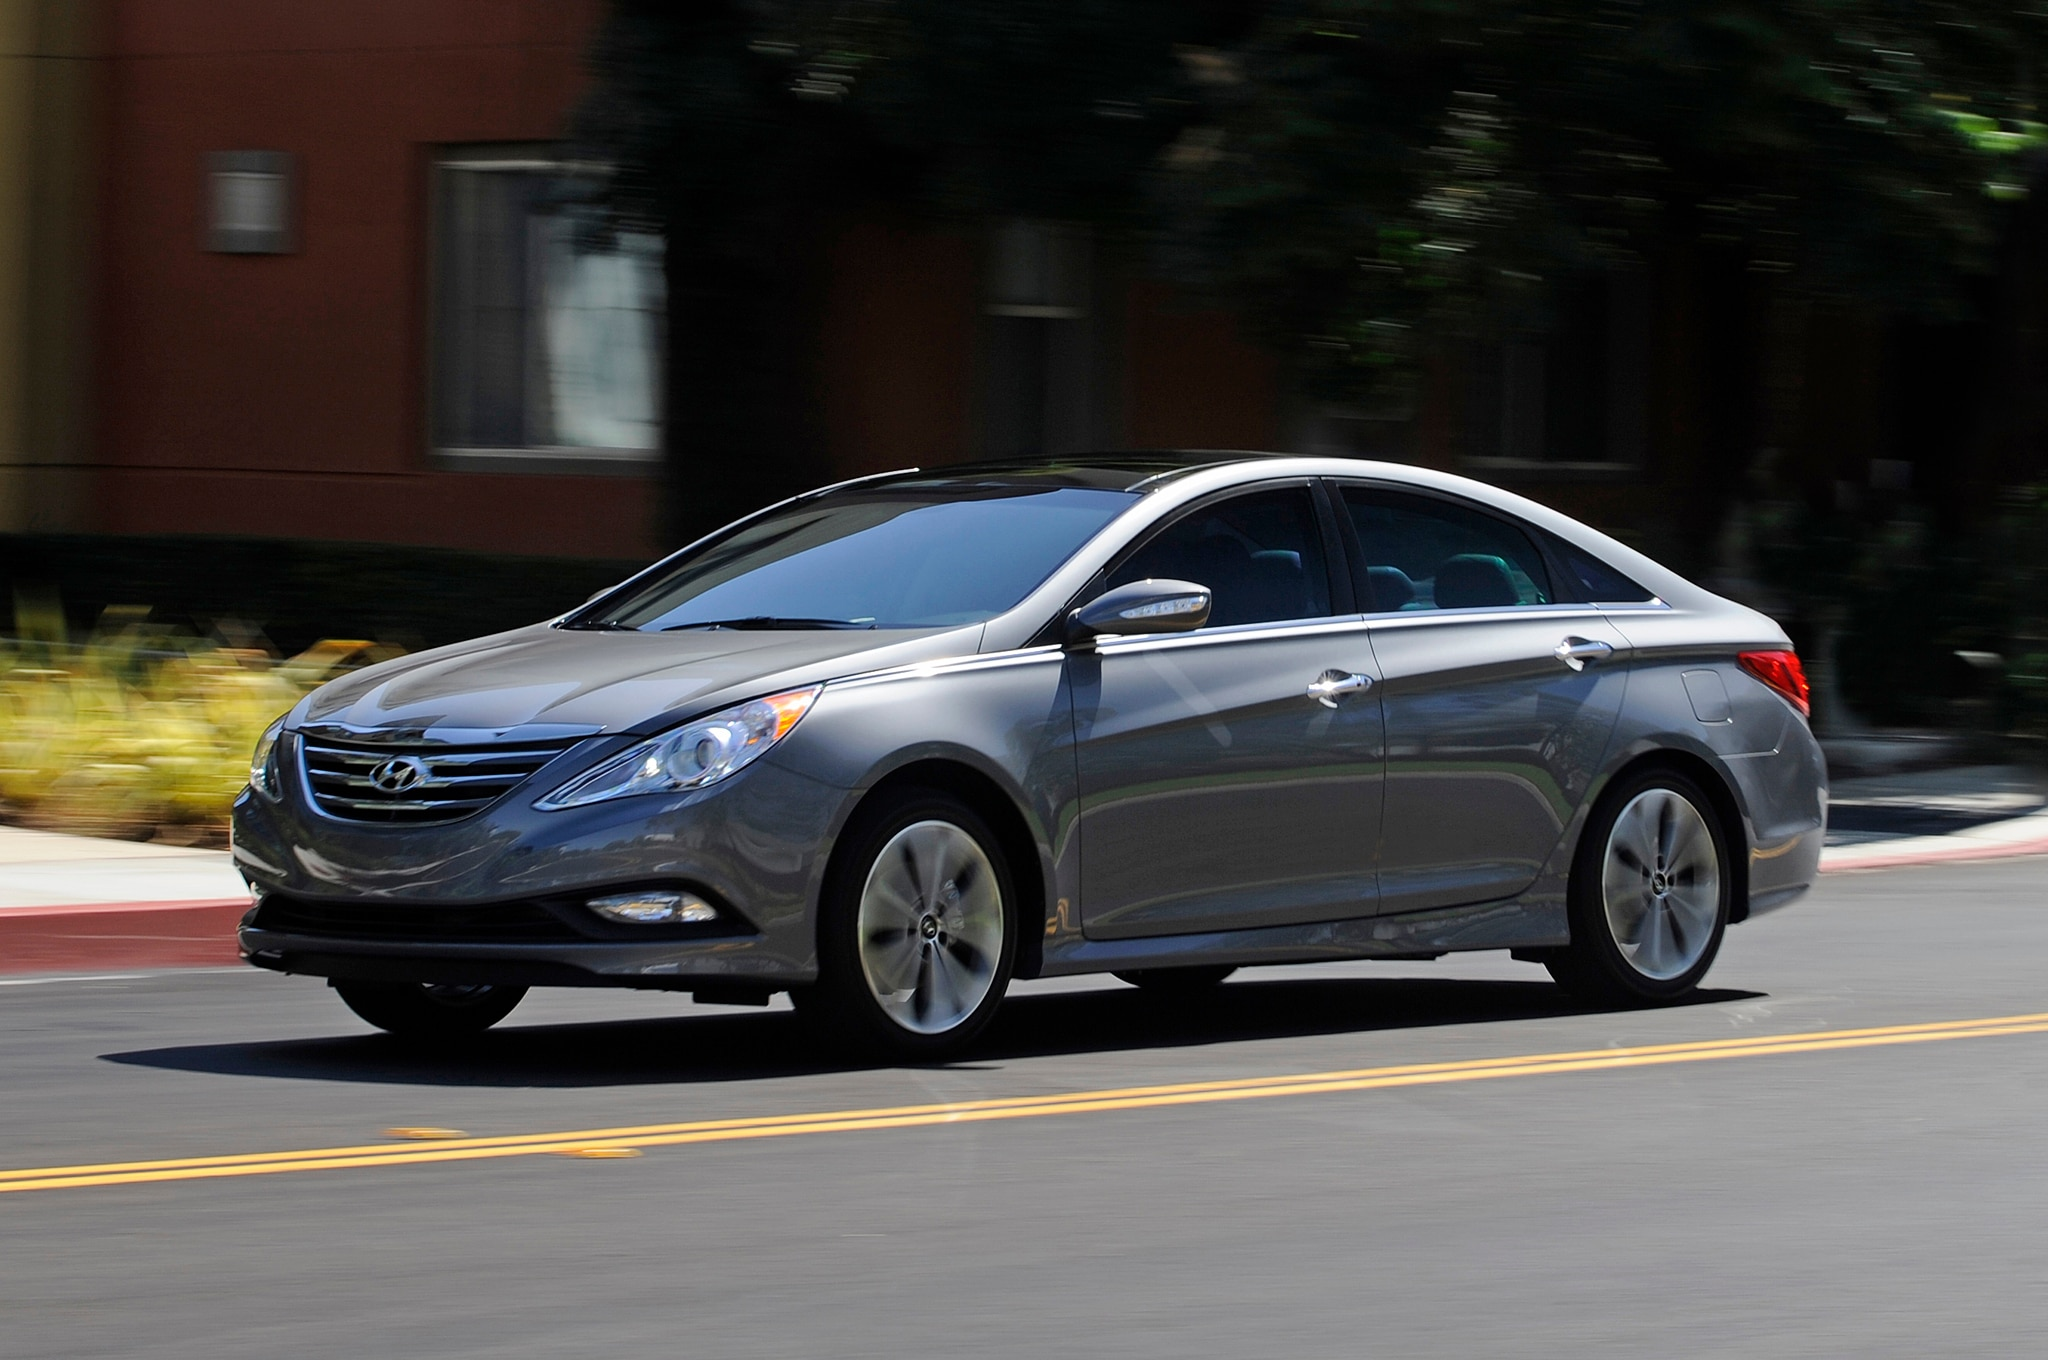 2014 hyundai sonata updated priced from 22 145. Black Bedroom Furniture Sets. Home Design Ideas